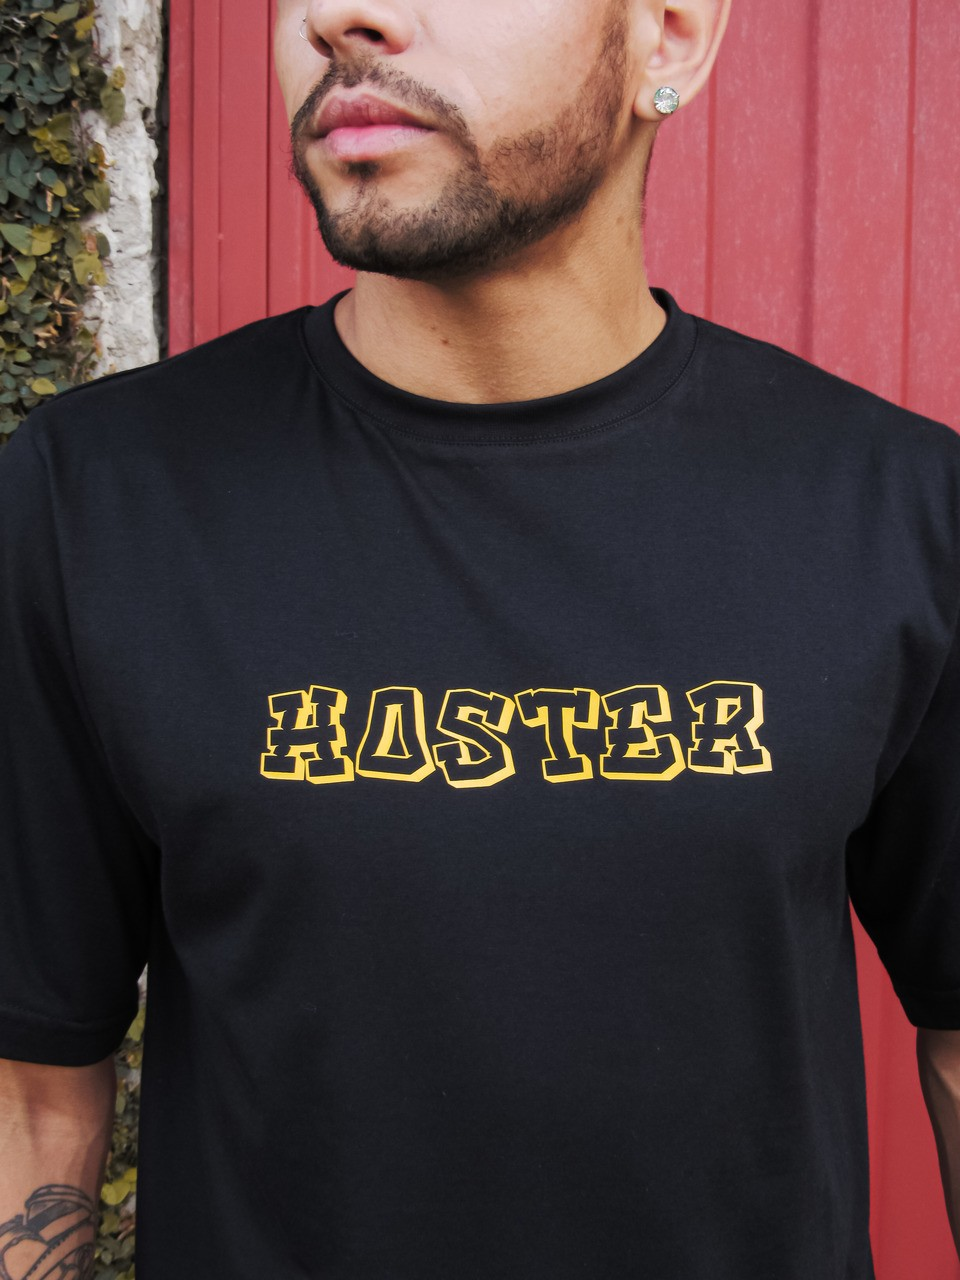 Camiseta HOSTER Preta Monster